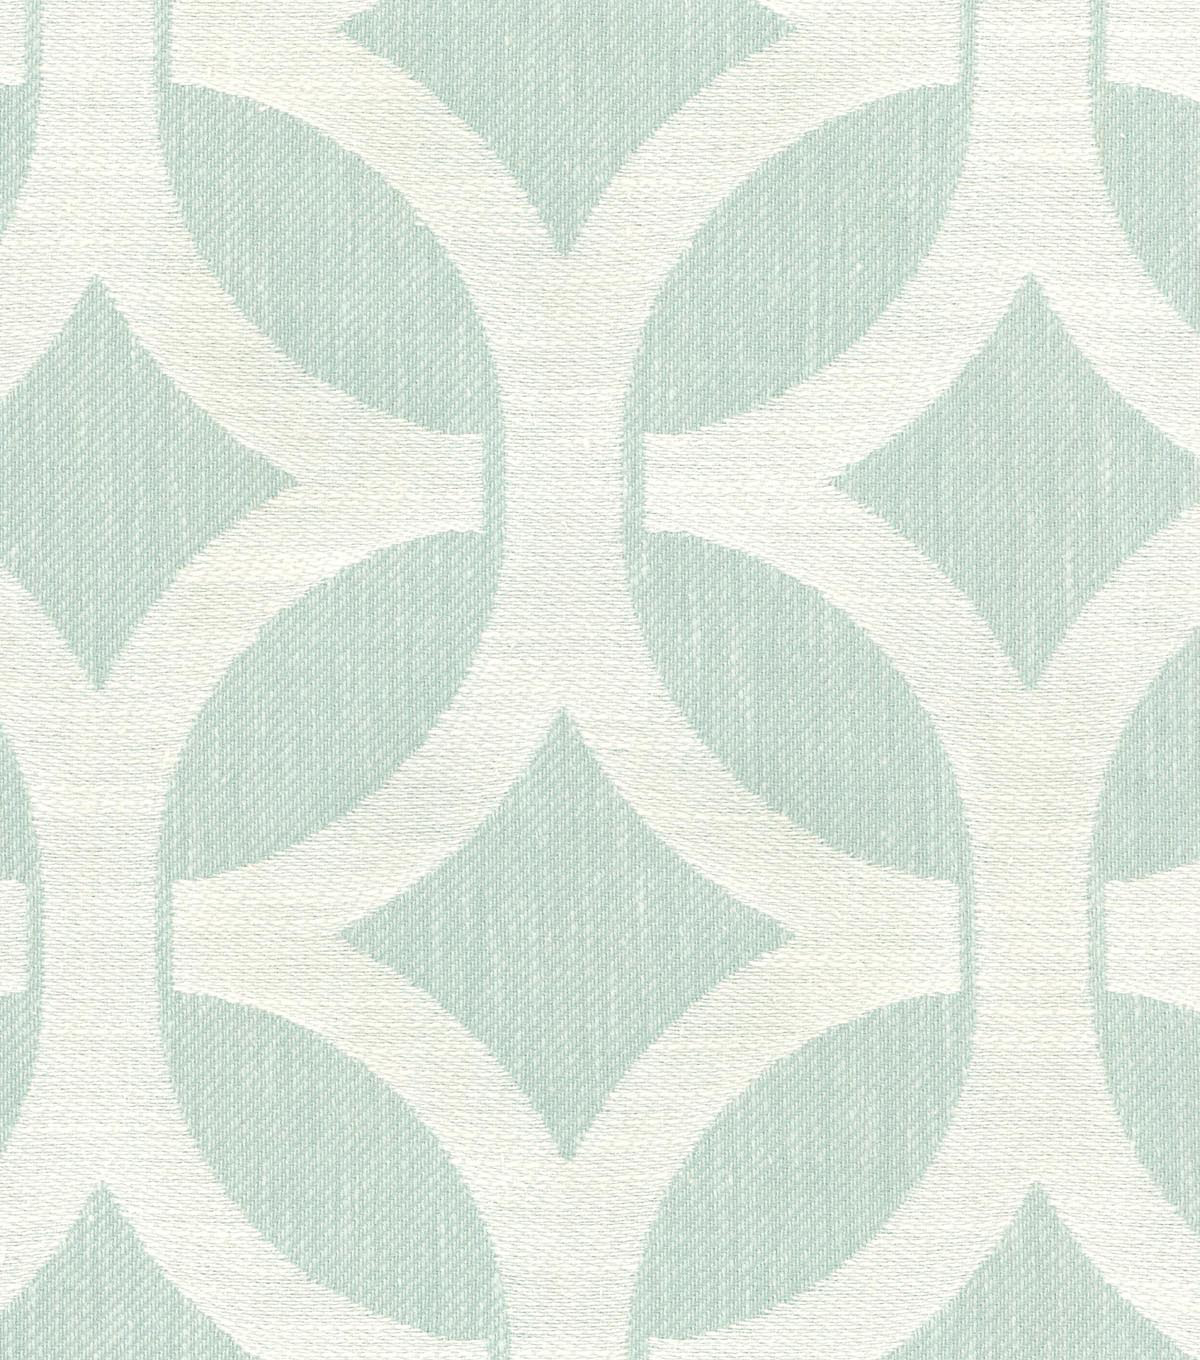 Waverly Multi-Purpose Decor Fabric 55\u0022-Ludlow Lattice/Pool